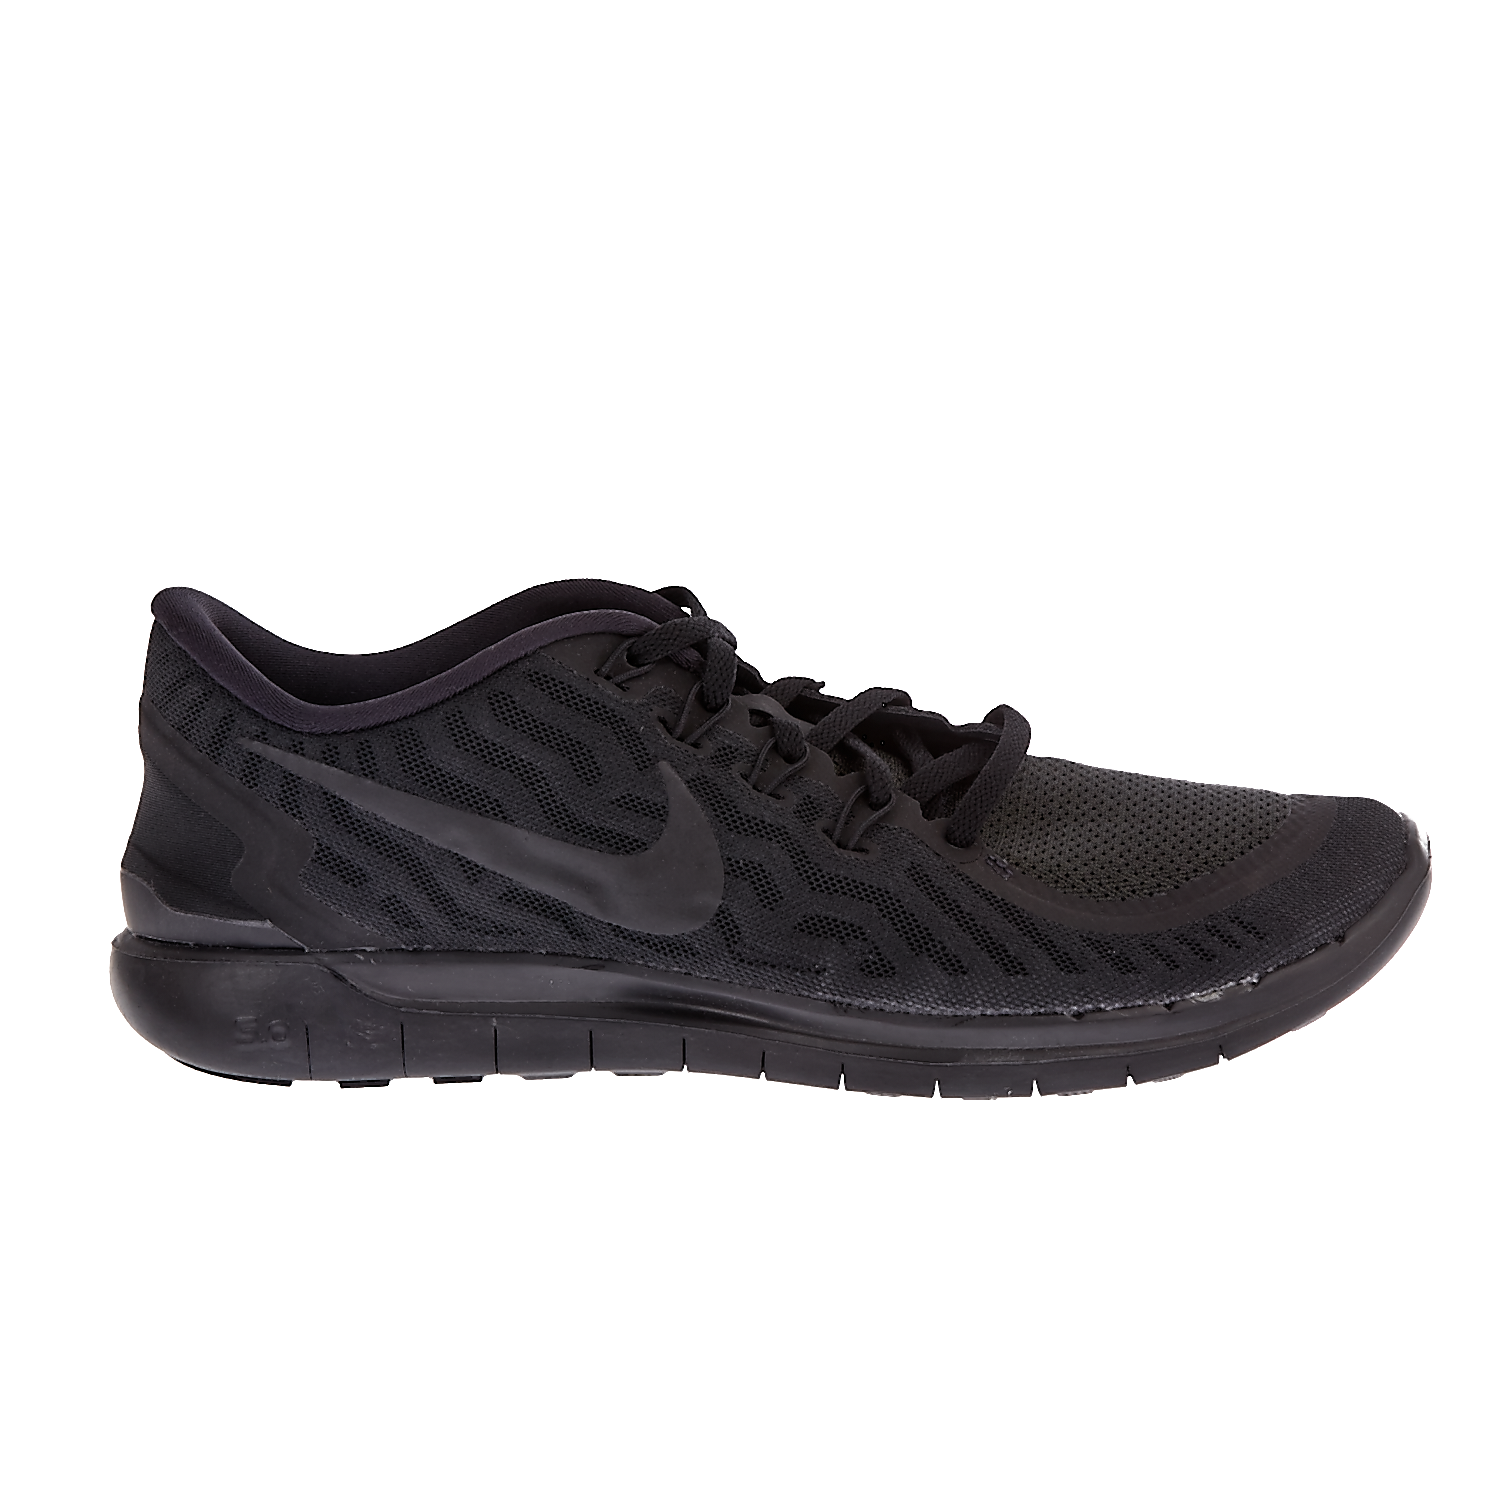 6e68a104048 NIKE - Ανδρικά αθλητικά παπούτσια NIKE FREE 5.0 μαύρα